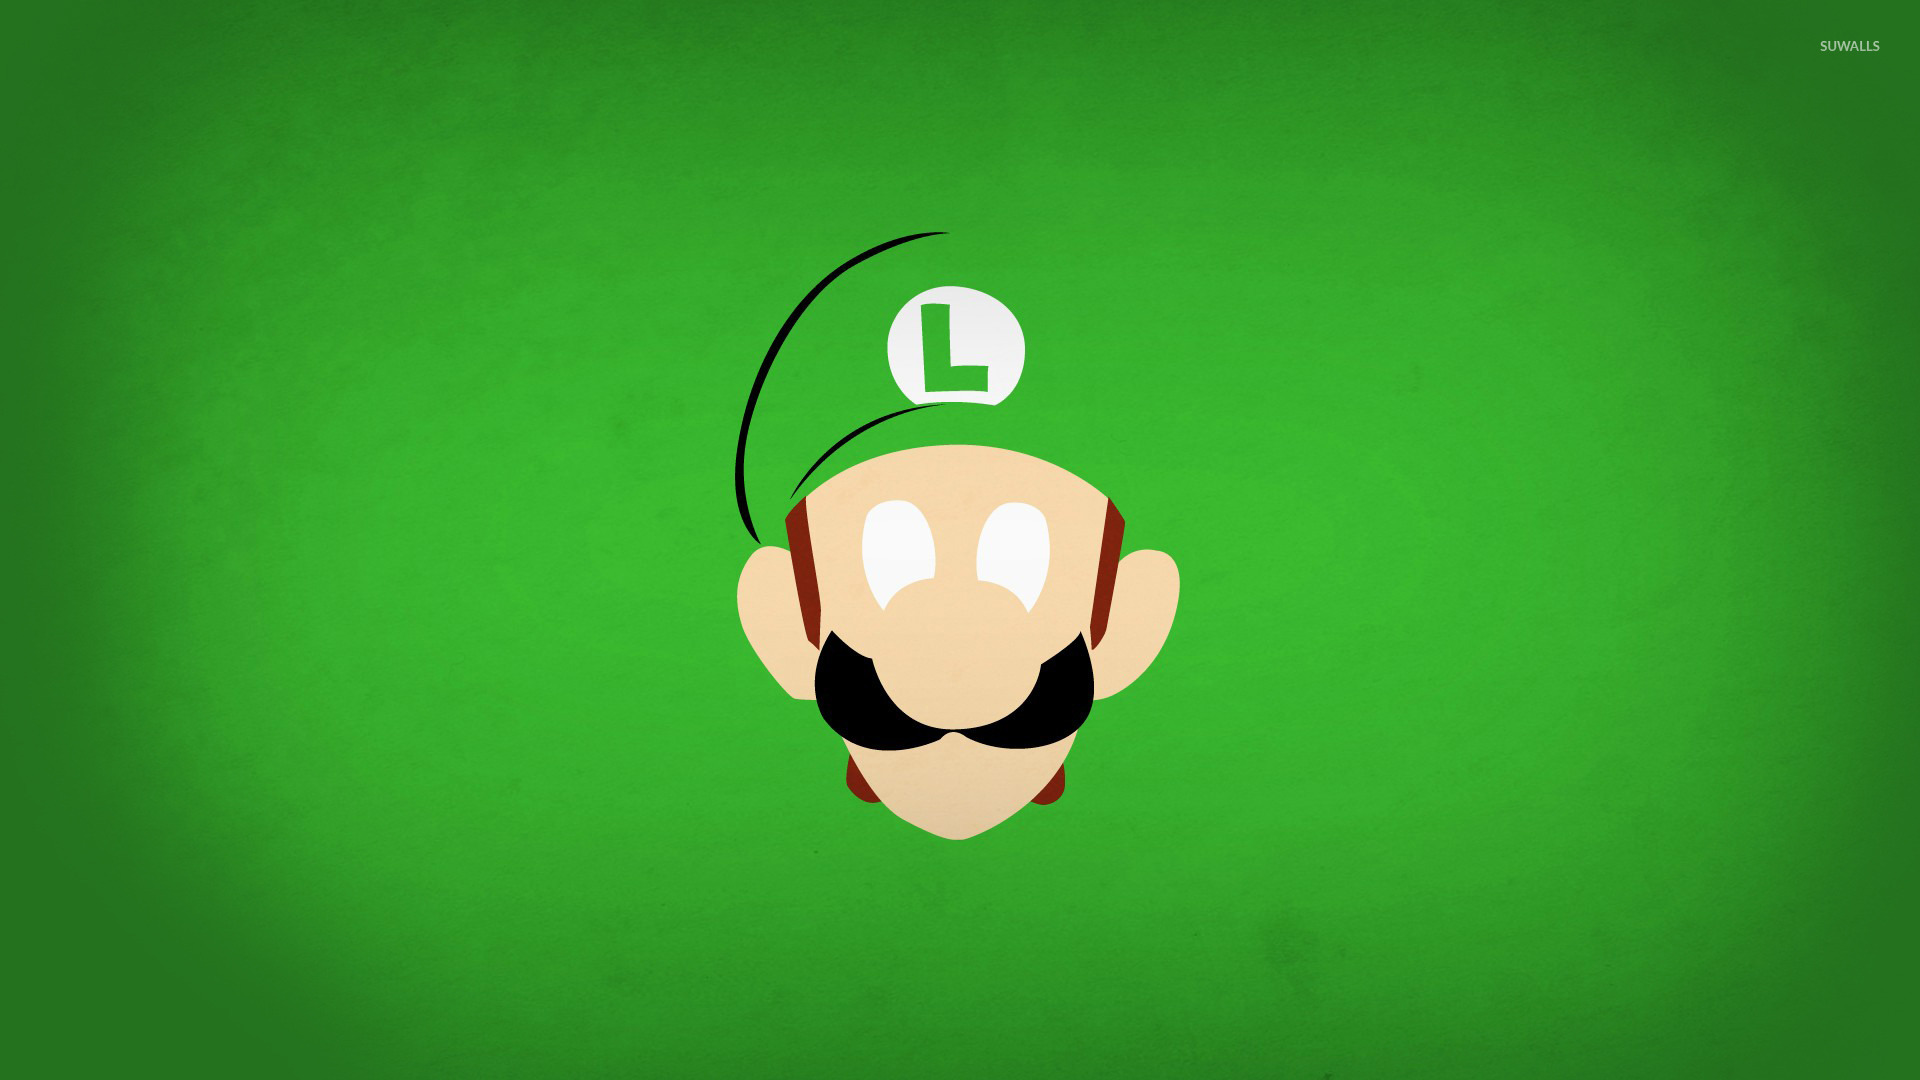 Luigi mario bros wallpaper minimalistic wallpapers 21020 luigi mario bros wallpaper altavistaventures Gallery